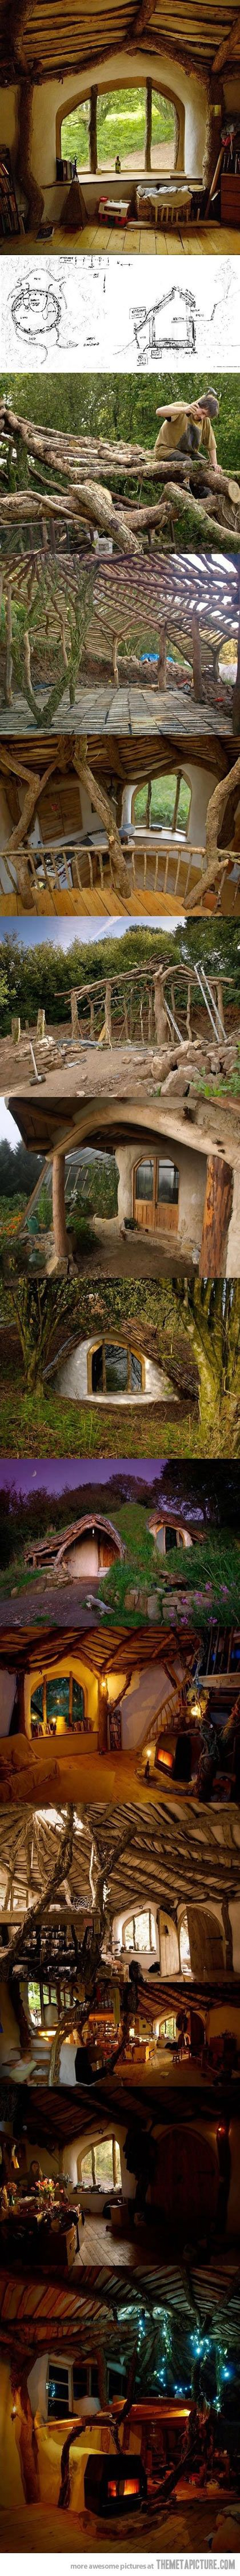 How to build a Hobbit house…